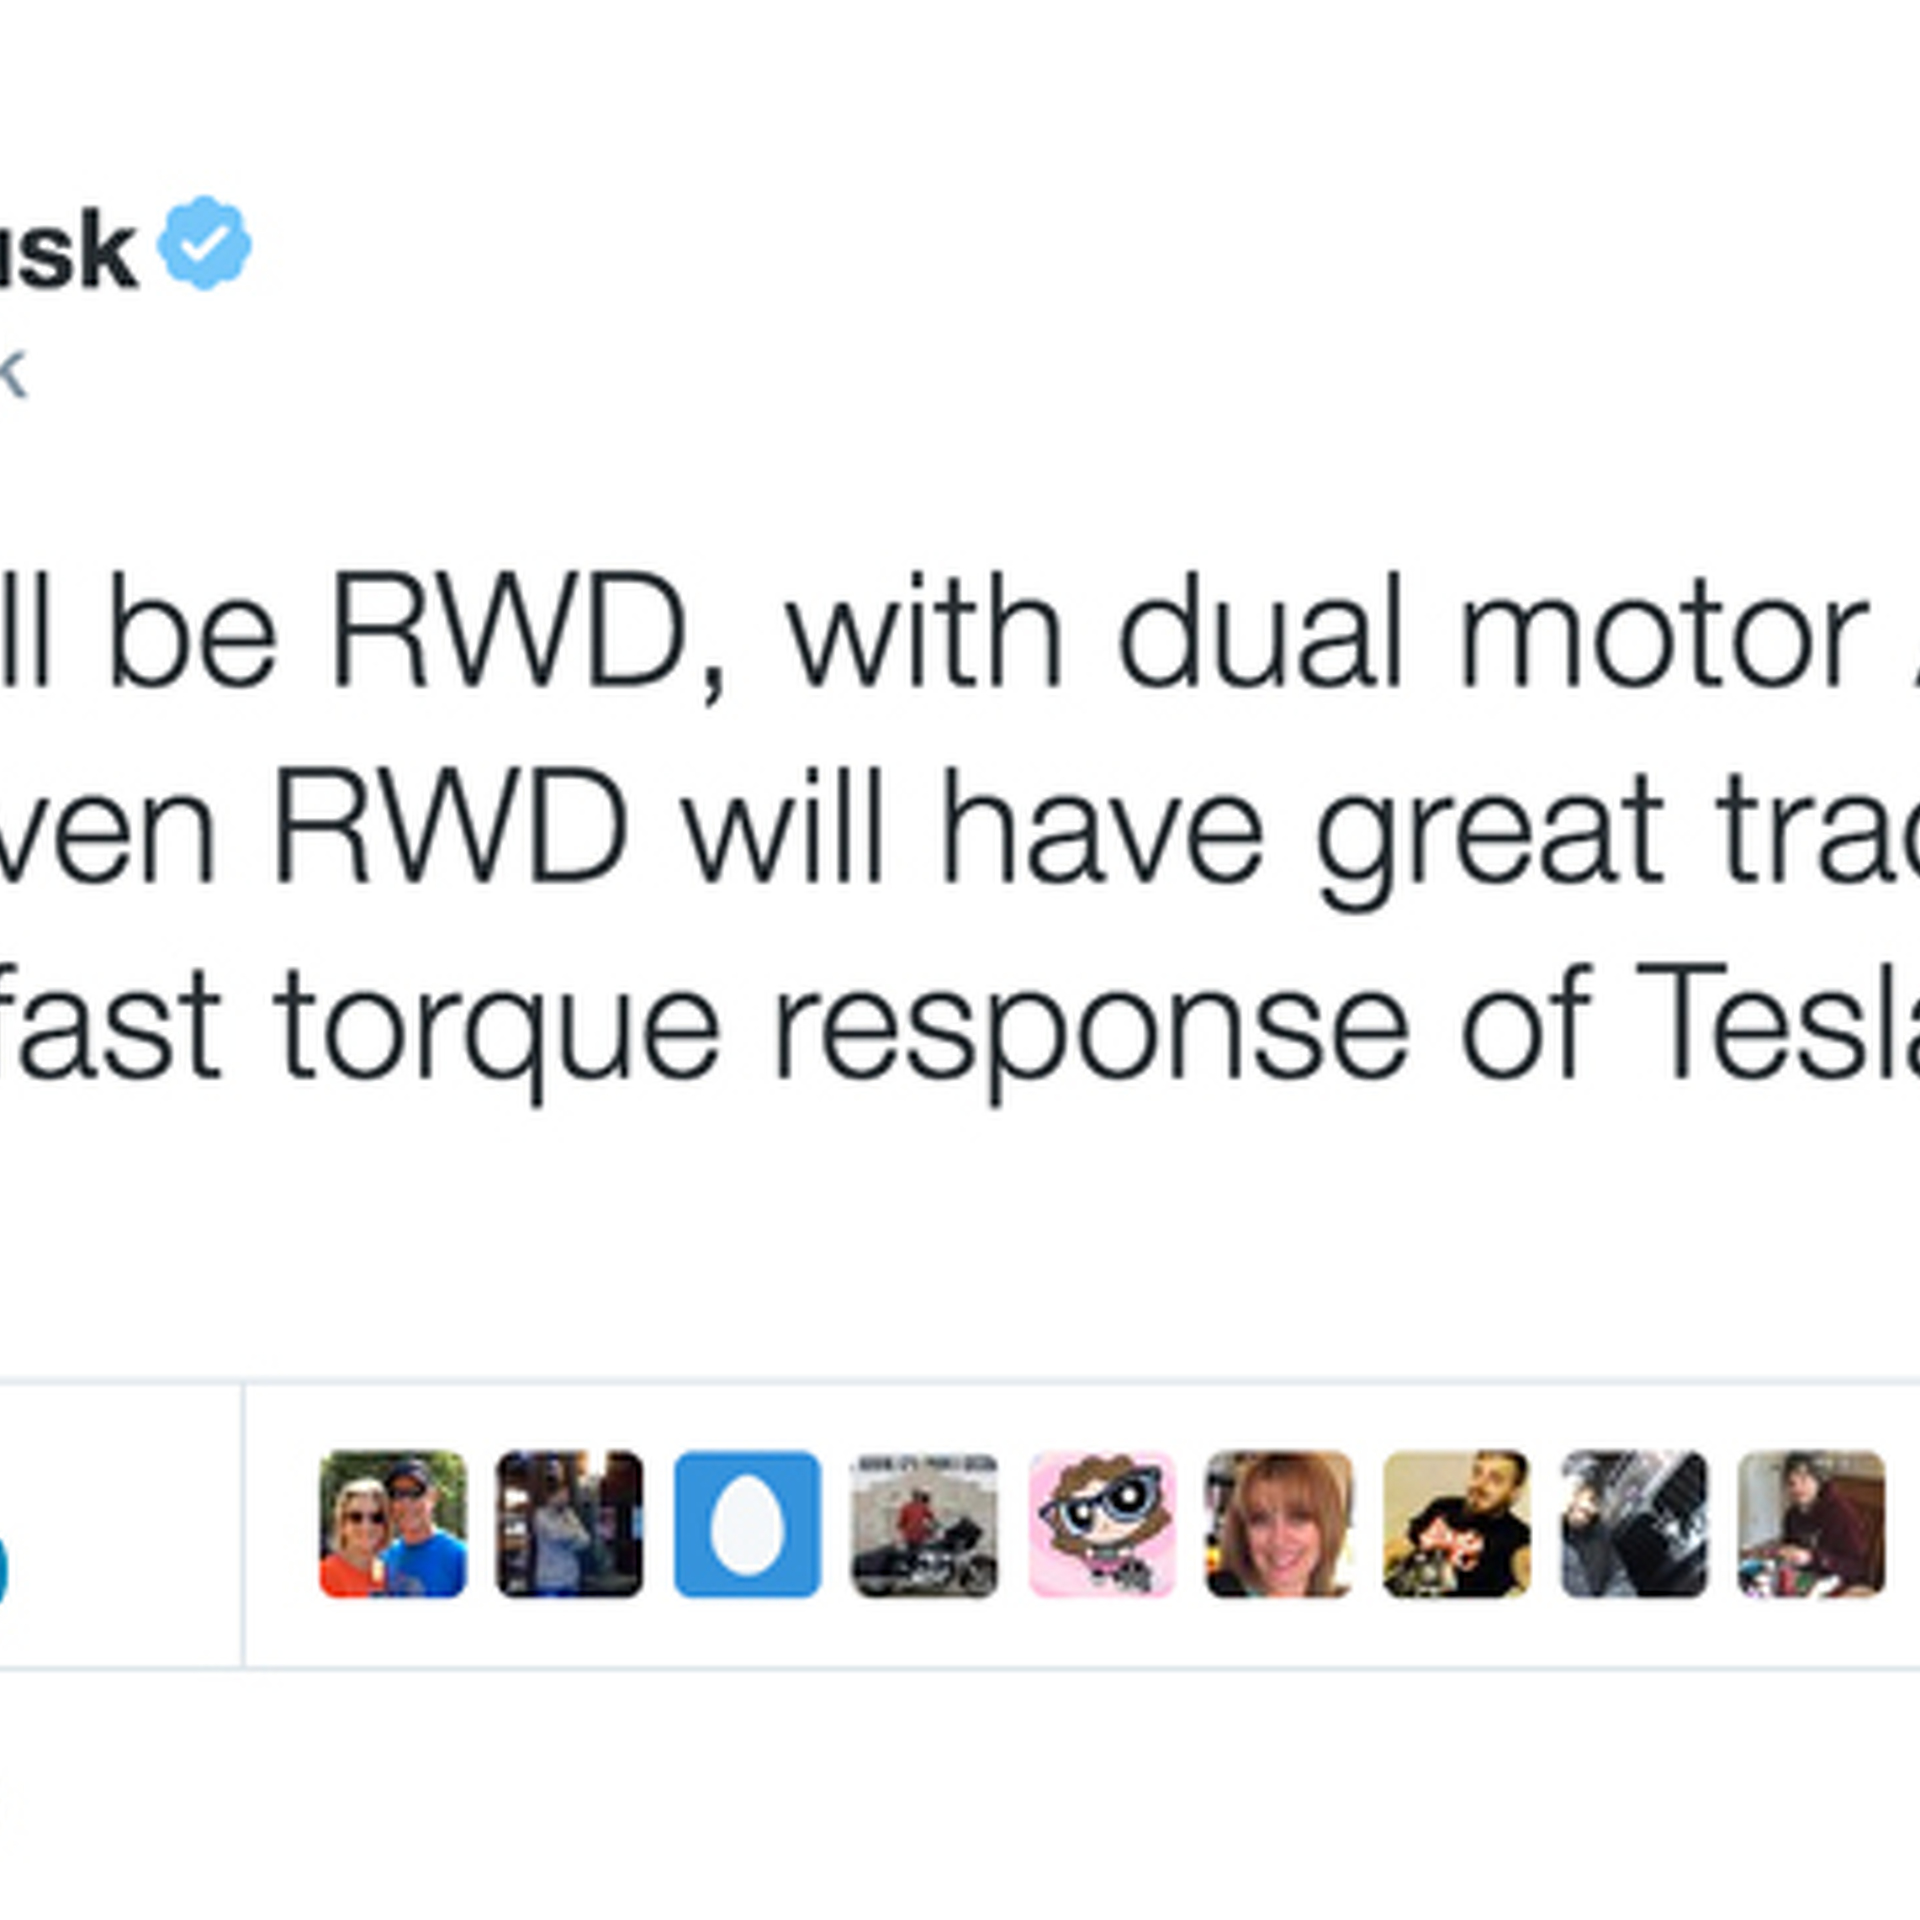 Elon Musk Reveals Even More Tesla Model 3 Info